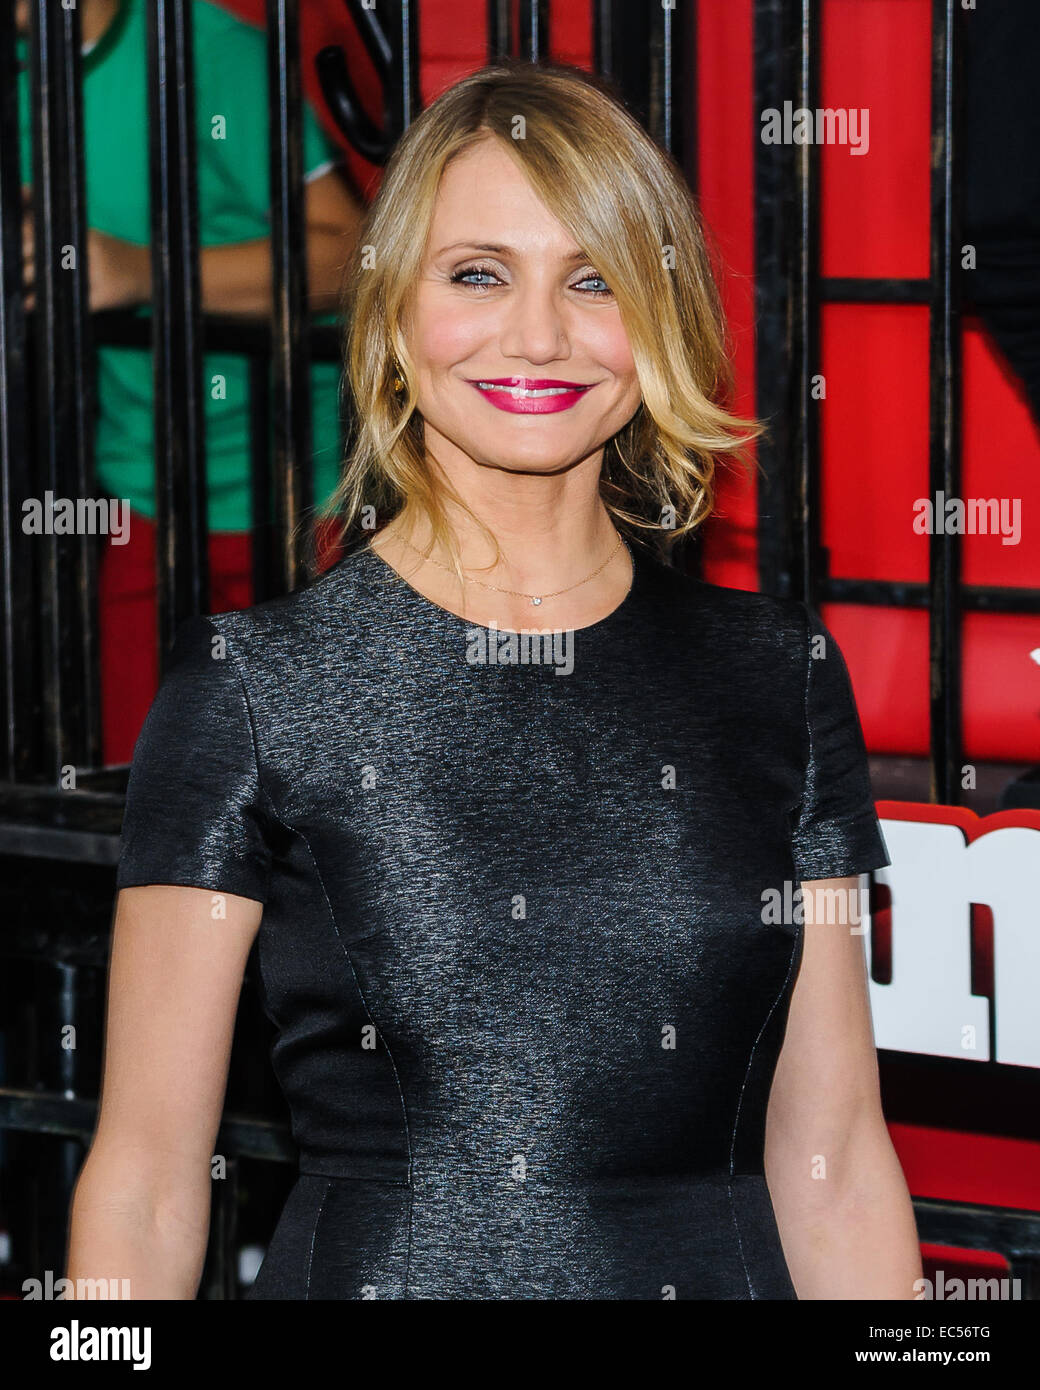 New York, USA. 7th December, 2014.  Cameron Diaz Arrives at the New York City Premiere of 'Annie' at The - Stock Image